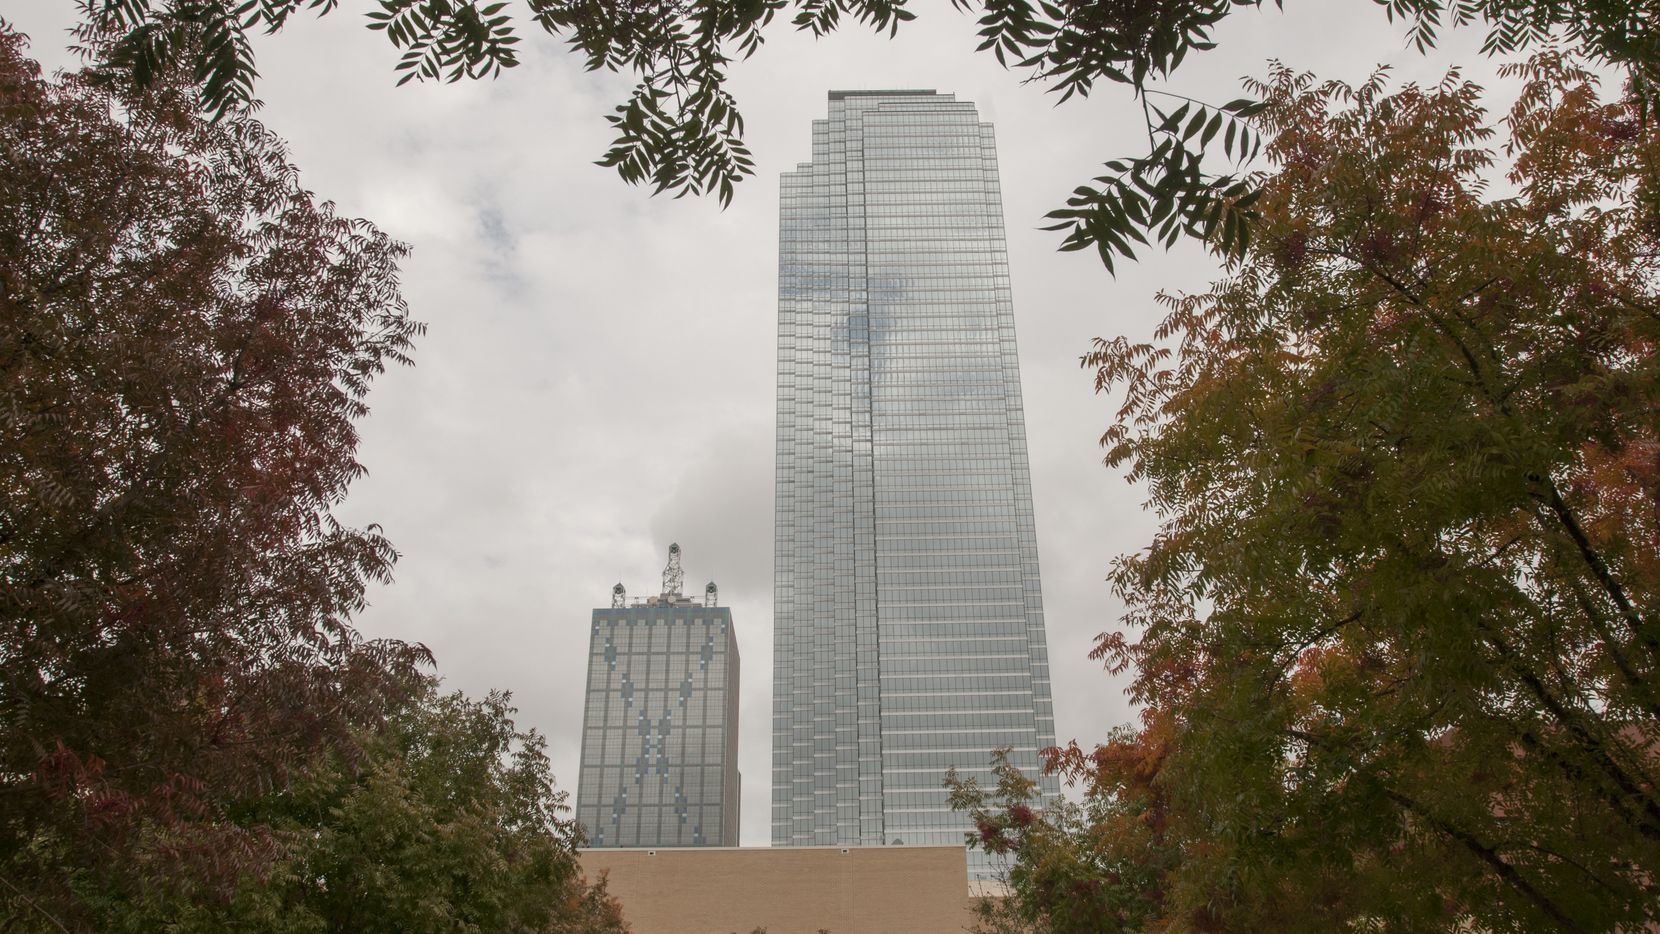 When downtown Dallas' tallest tower, Bank of America Plaza, was under construction in the 1980s, rumormongers spread the tale that the 72-story tower was sinking.